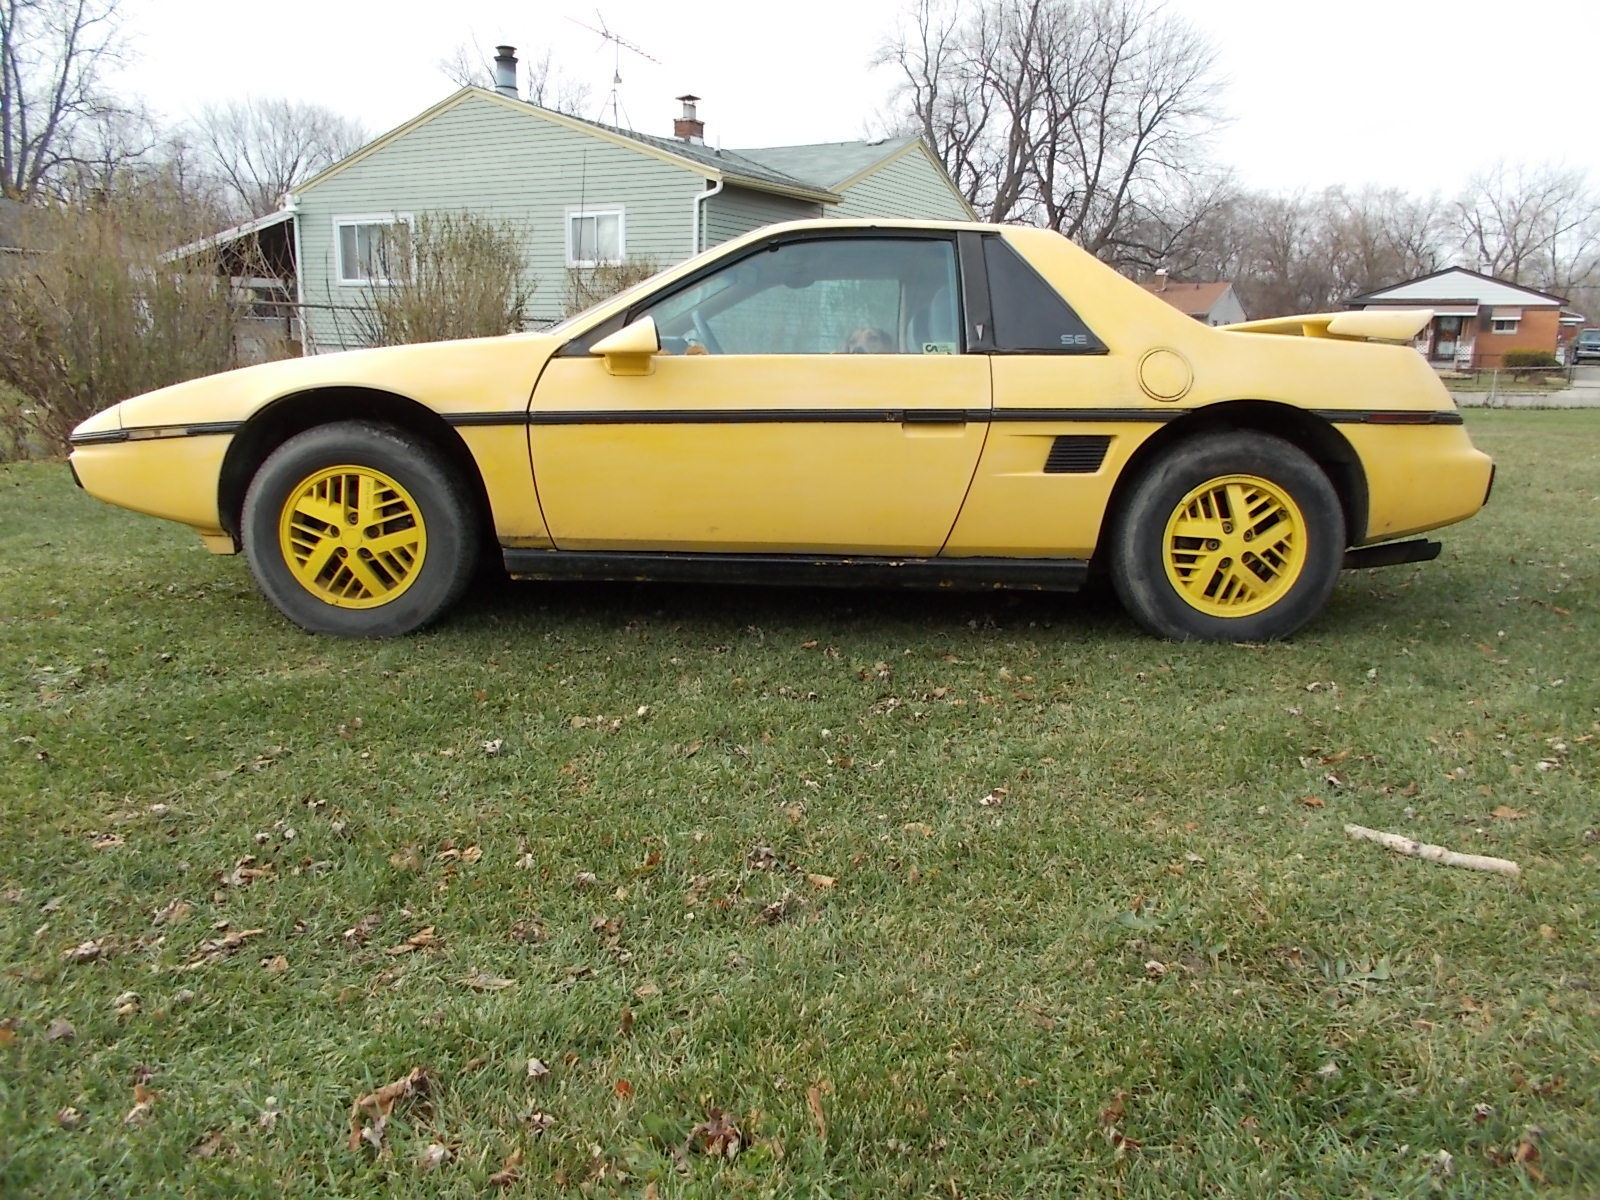 1984 pontiac fiero se coupe 2 door 2 5l automatic sunroof parts or rebuild classic pontiac. Black Bedroom Furniture Sets. Home Design Ideas